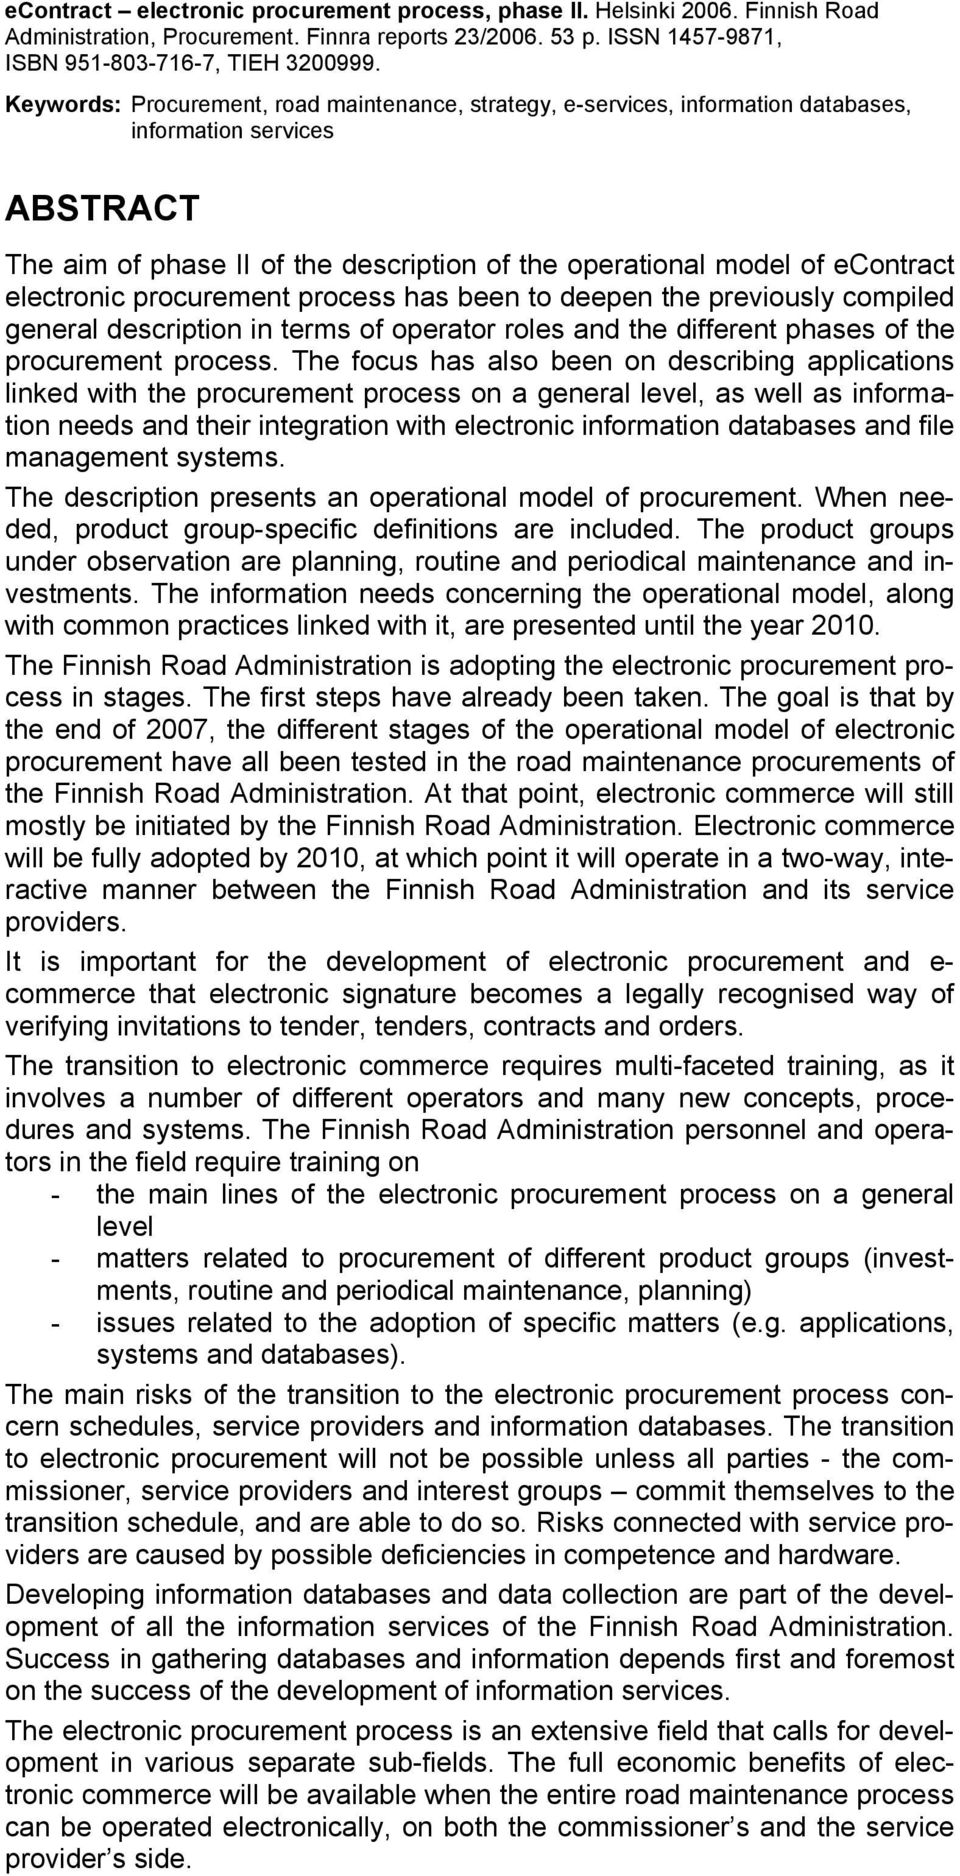 electronic procurement process has been to deepen the previously compiled general description in terms of operator roles and the different phases of the procurement process.